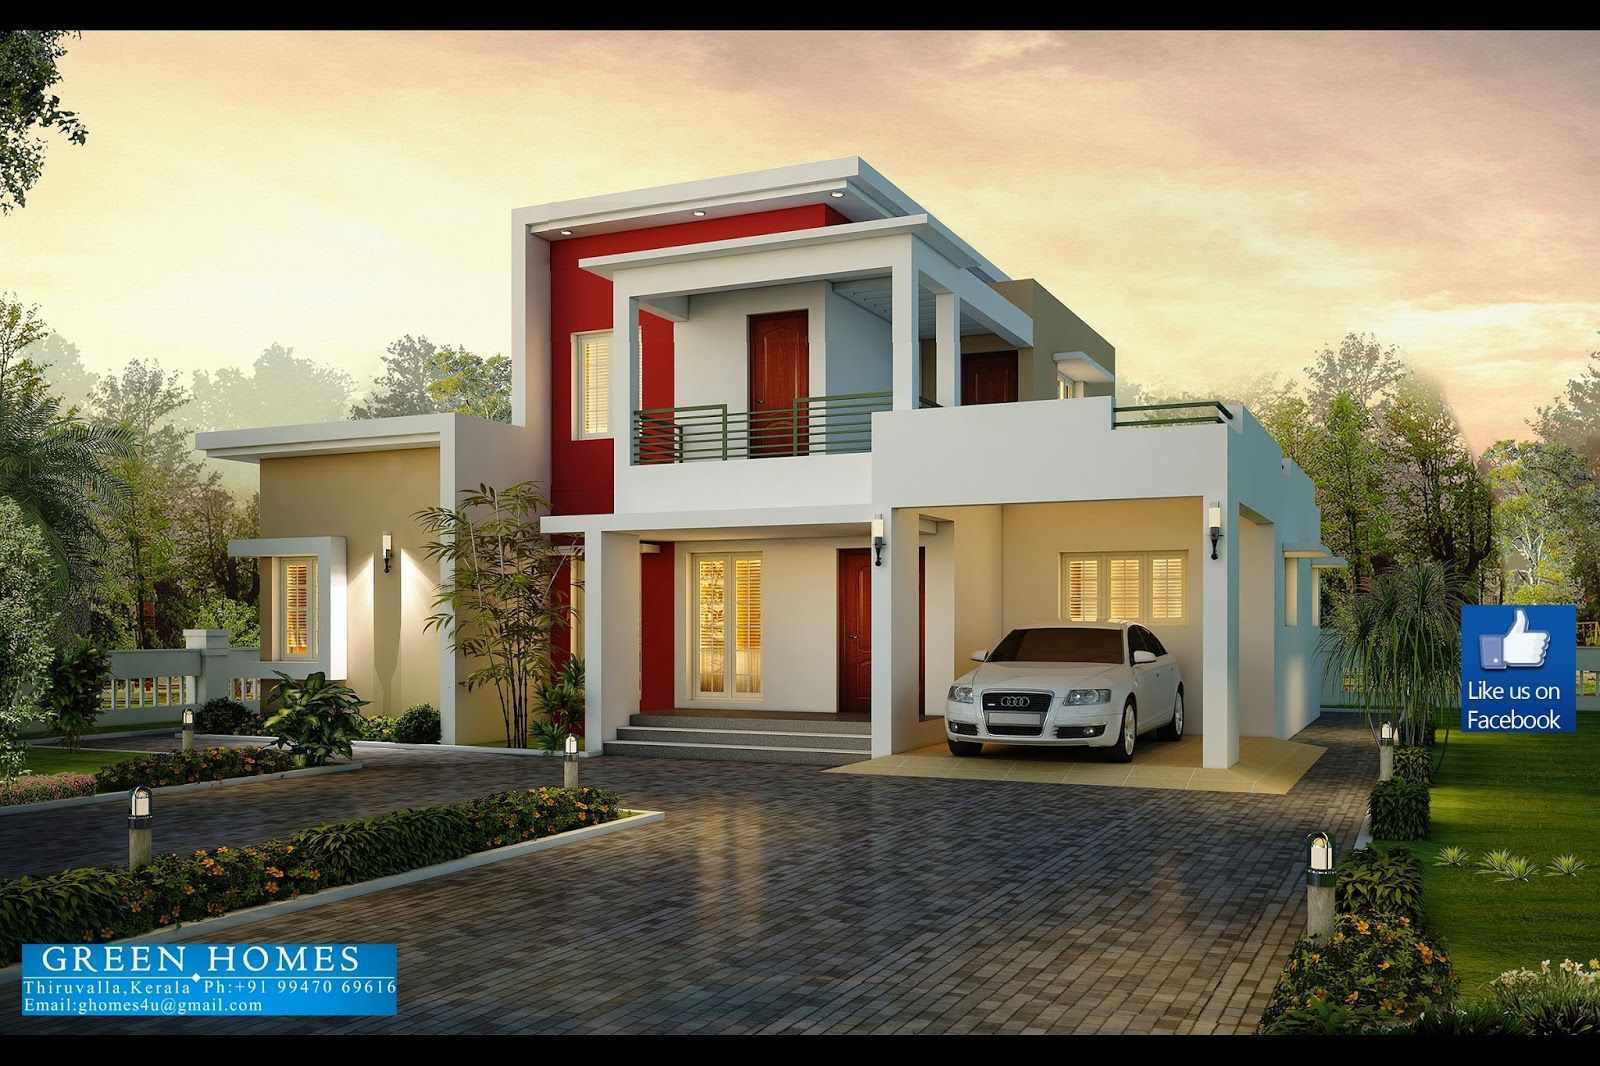 3Bedroom Section 8 Homes Modern 3 Bedroom House Designs